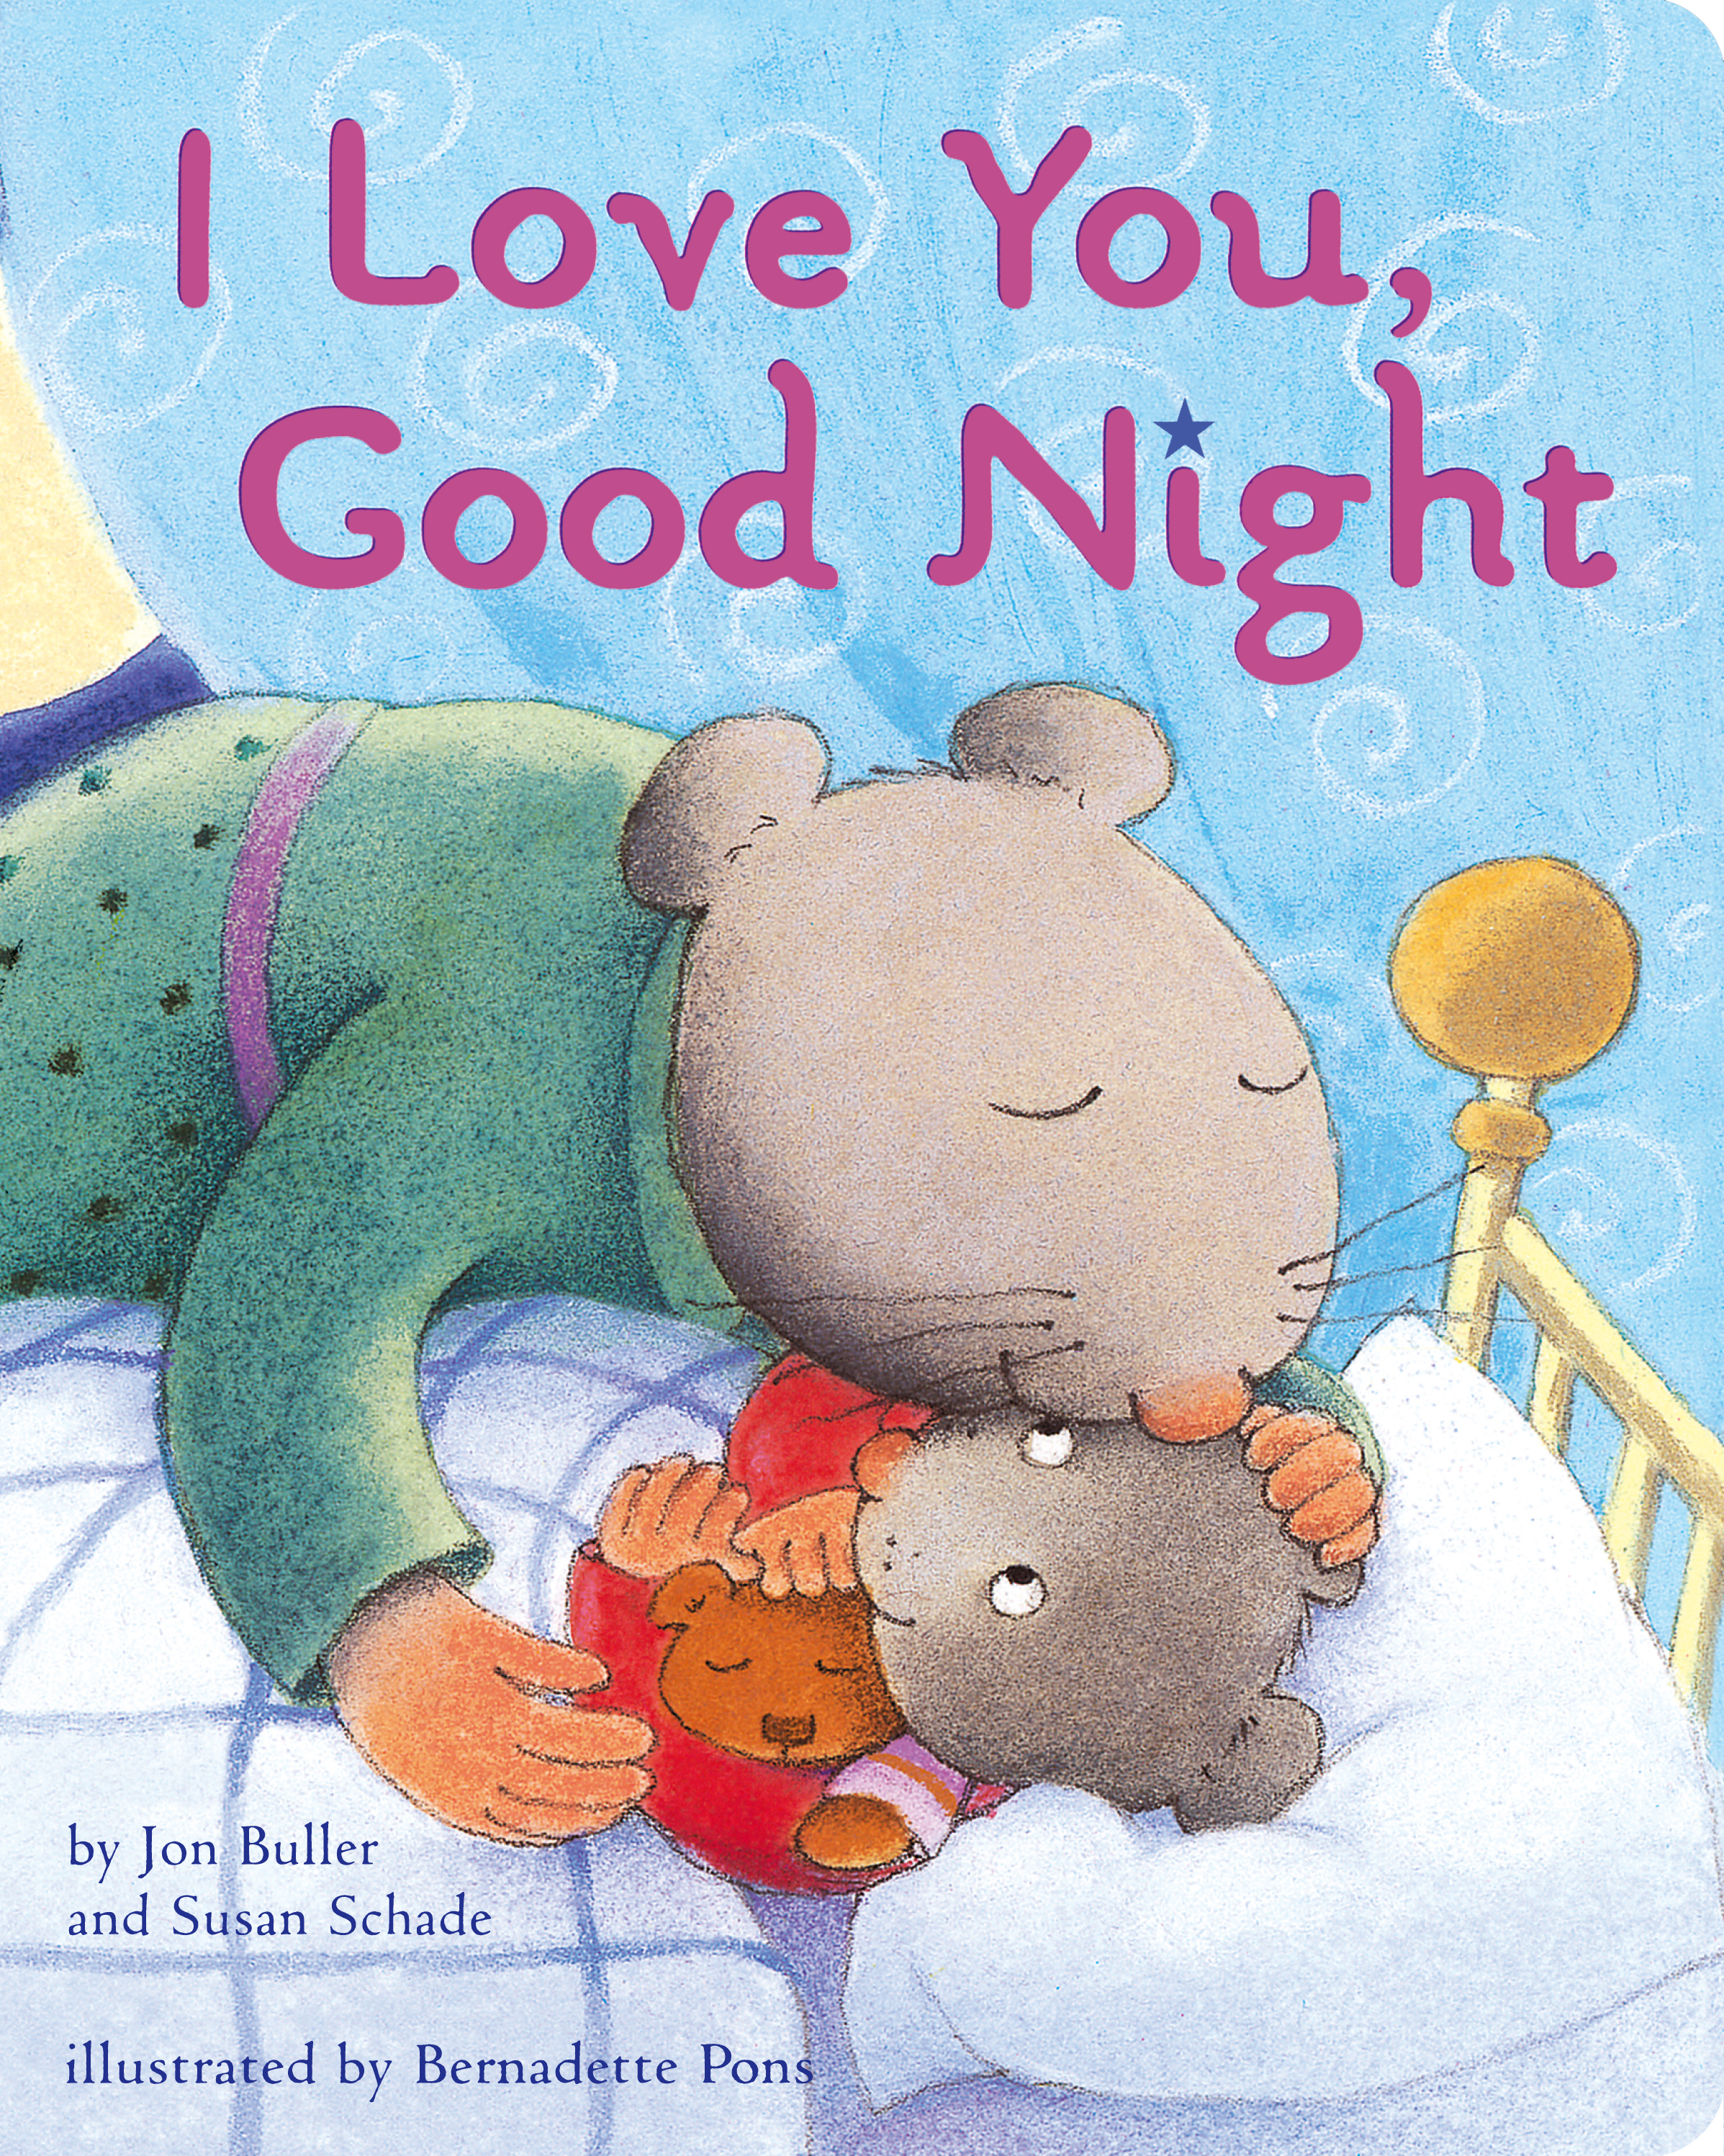 I Love You Good Night Book By Jon Buller Susan Schade